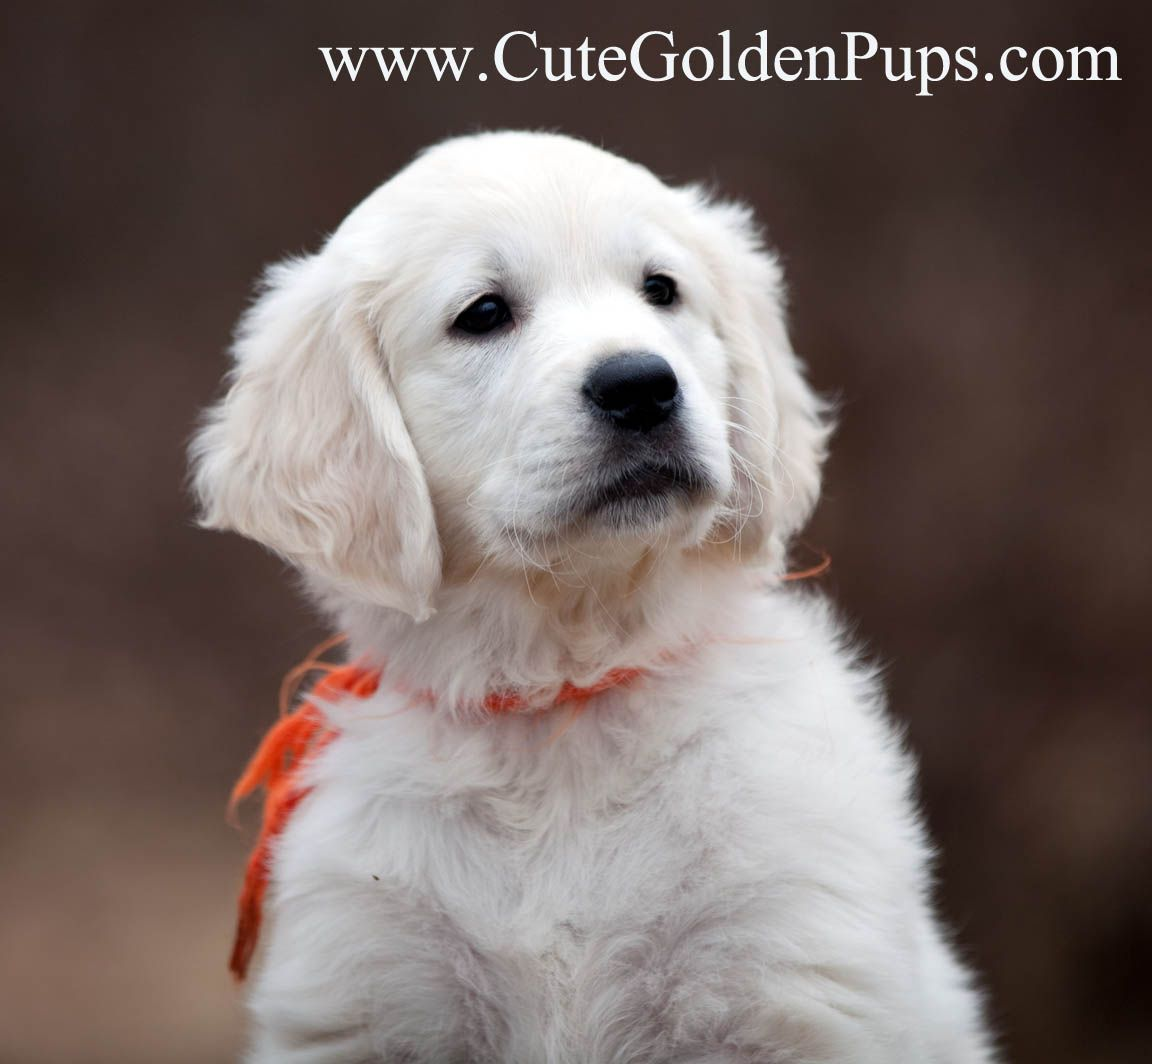 English Cream Golden Retrievers Nj Ca Tx Fl Ct Ma Ri Pa Az Best